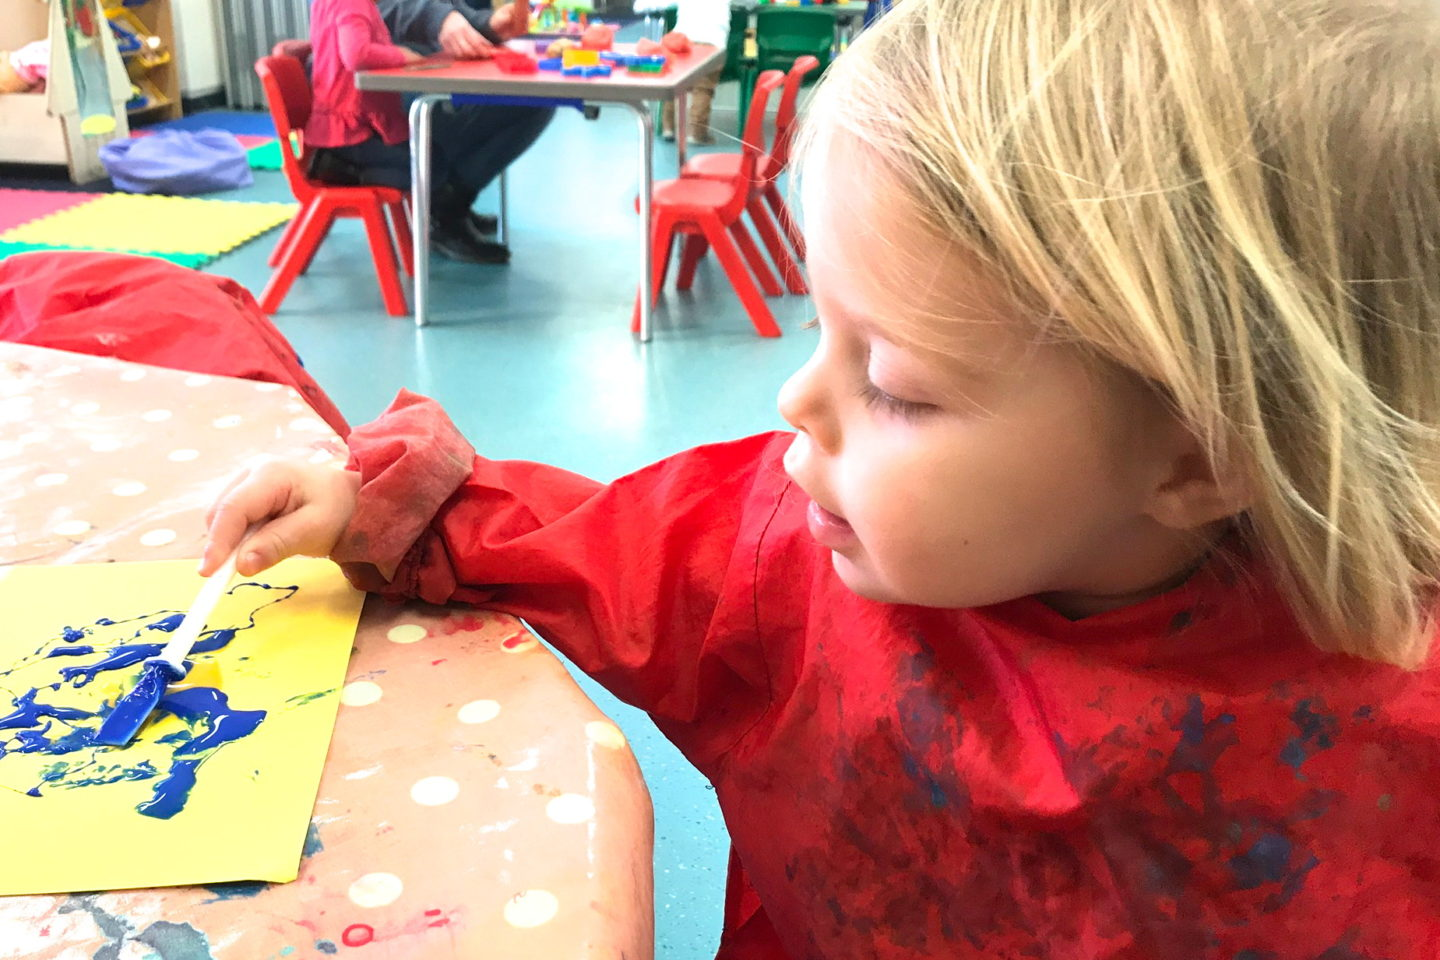 Two year old in an apron, painting